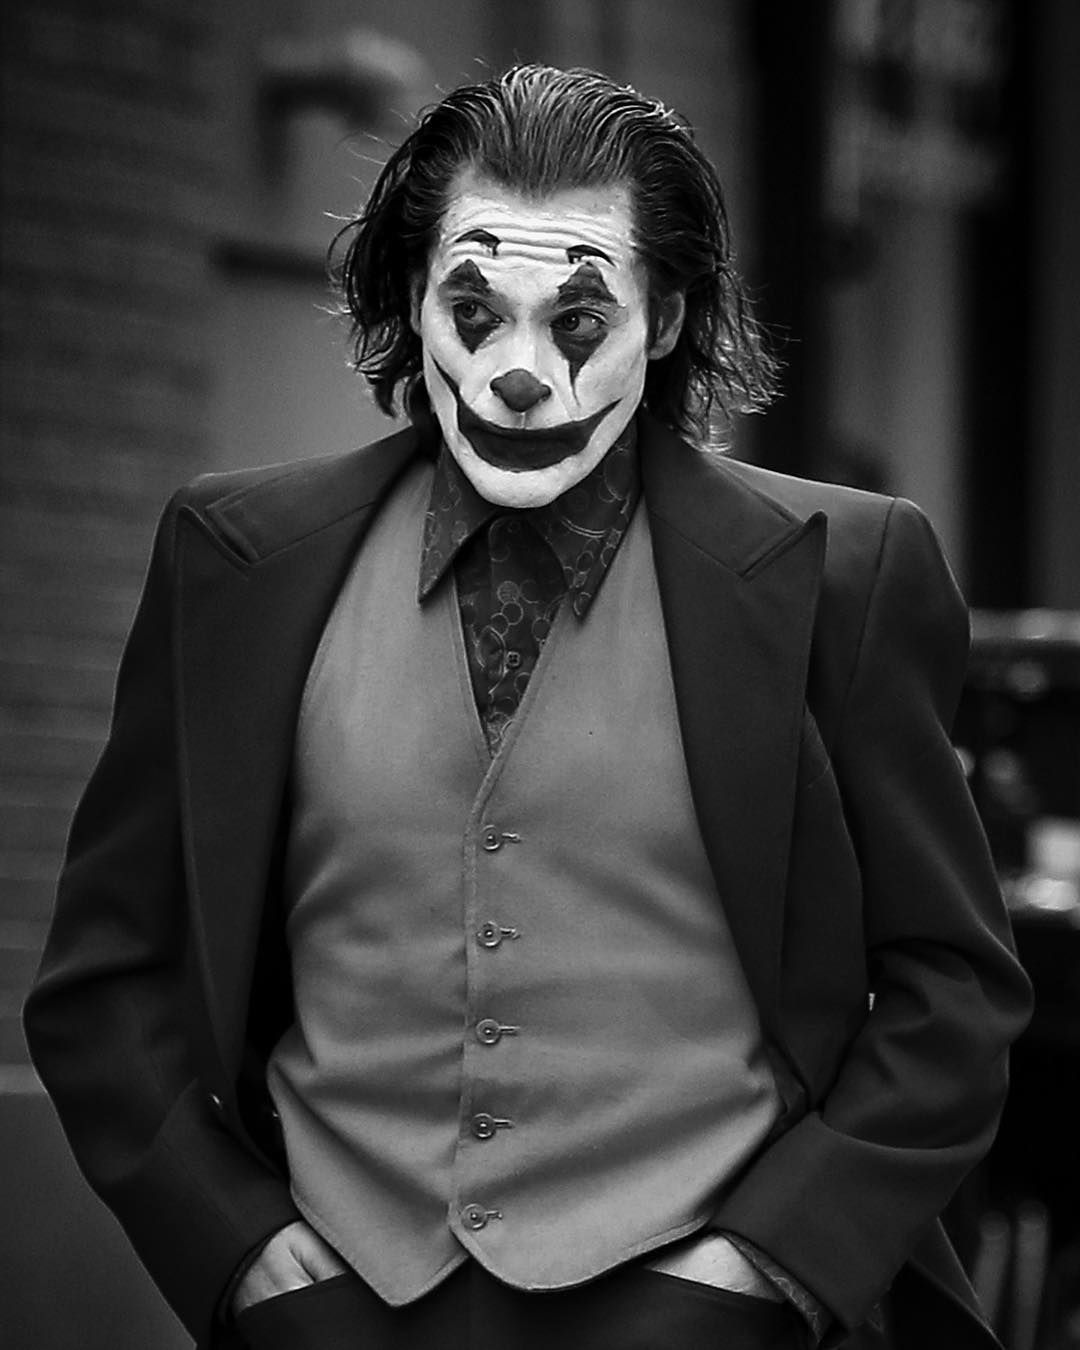 Black and White Joker Wallpapers - Top Free Black and ...